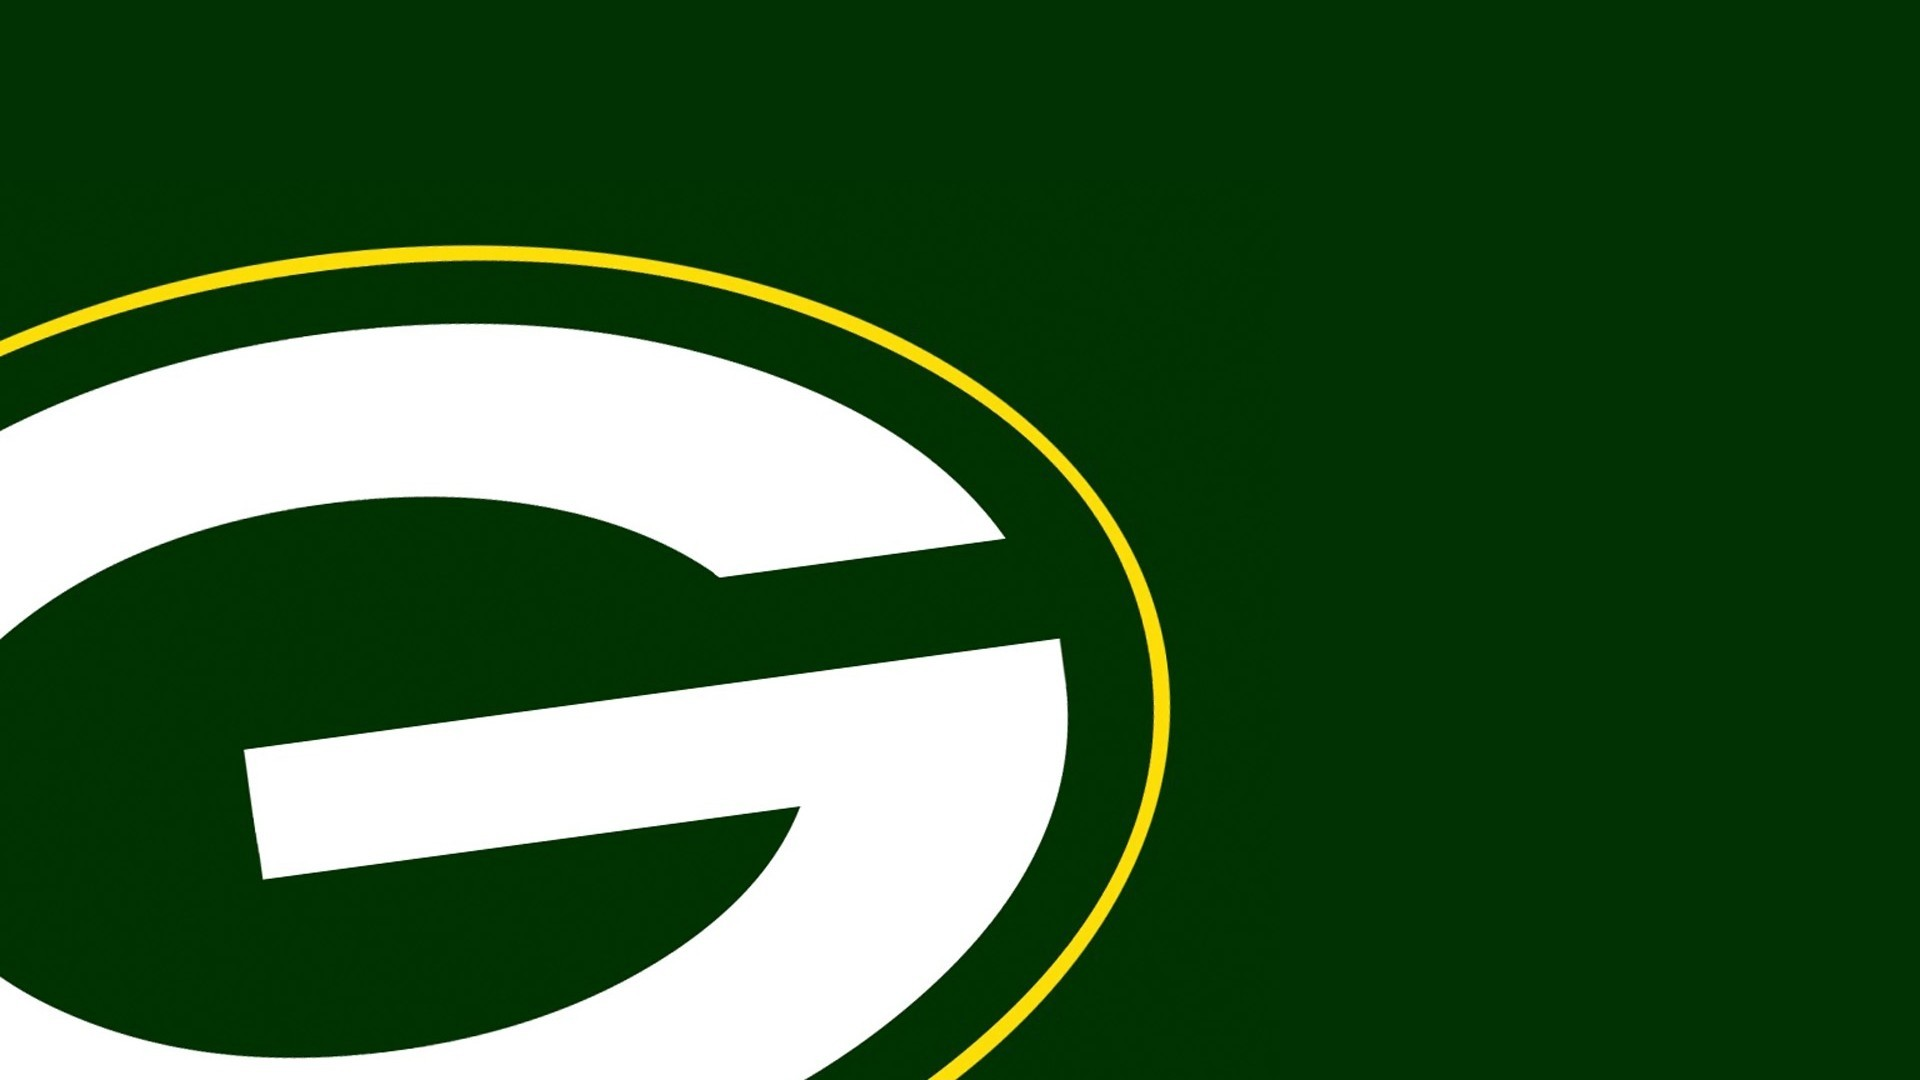 Green Bay Packers Wallpaper for pc